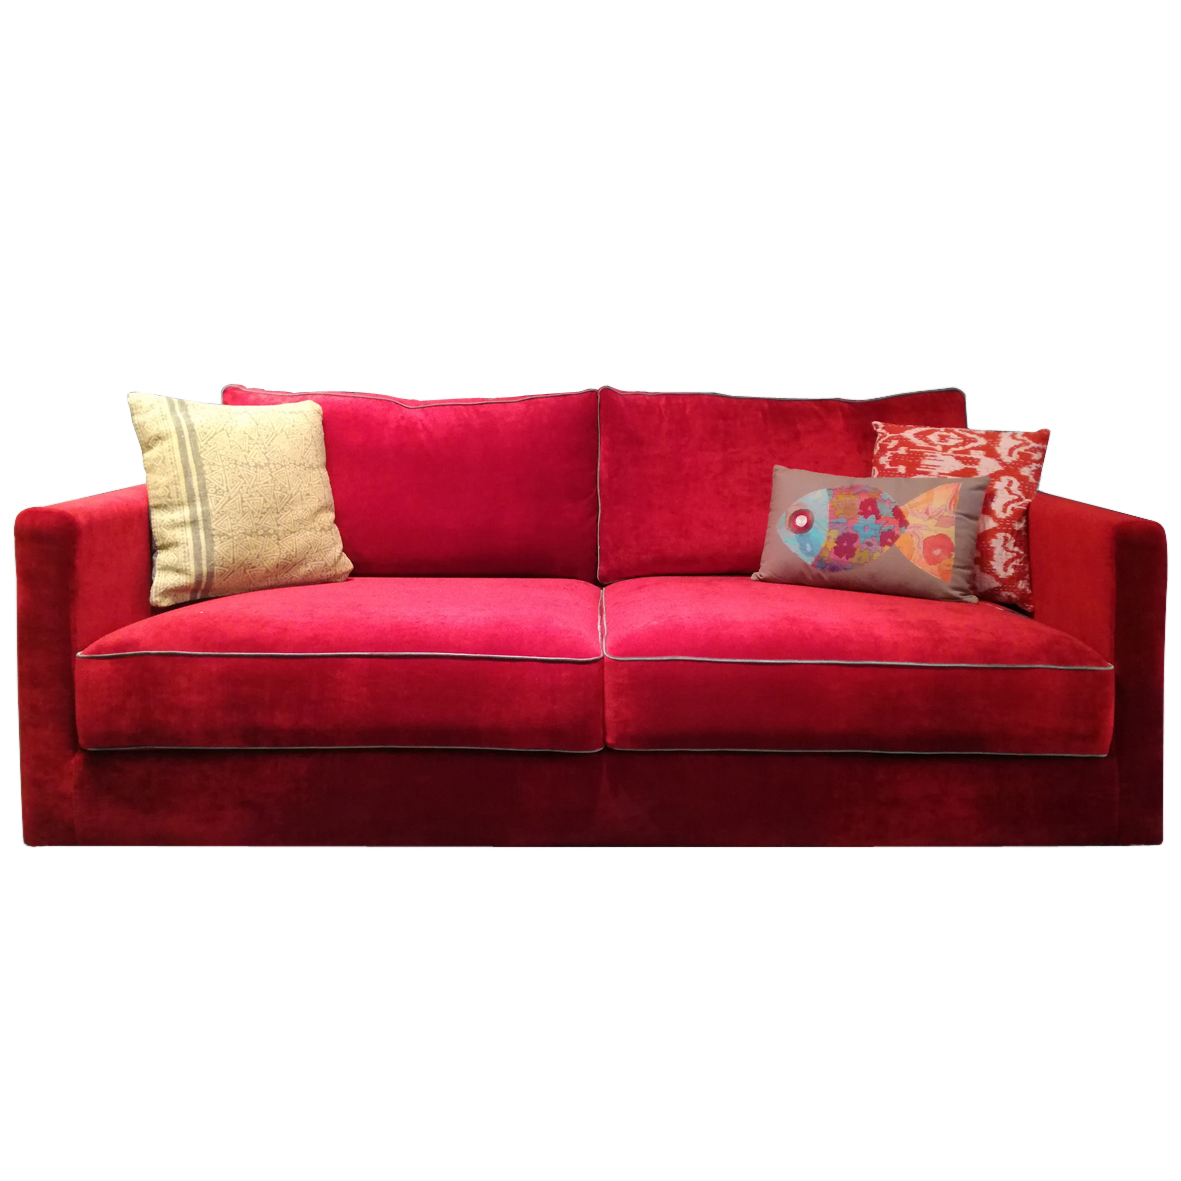 velvet sofa kate shop fabrics red forman couch